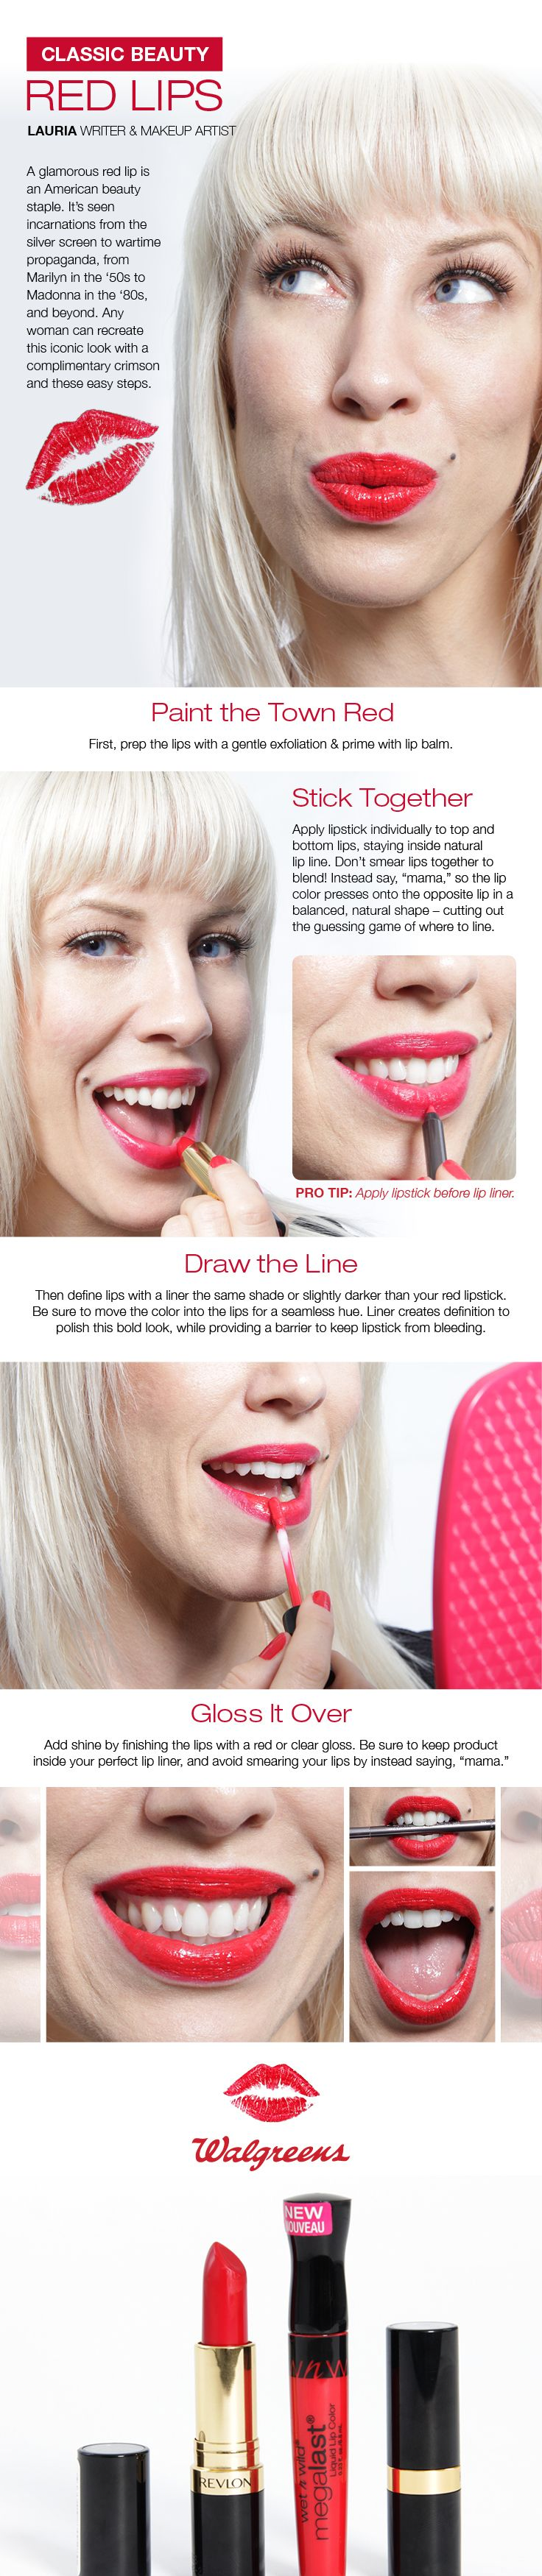 Every Woman Can Wear Red Lipstick! Makeup Artist Lauria Tells You How To  Apply This